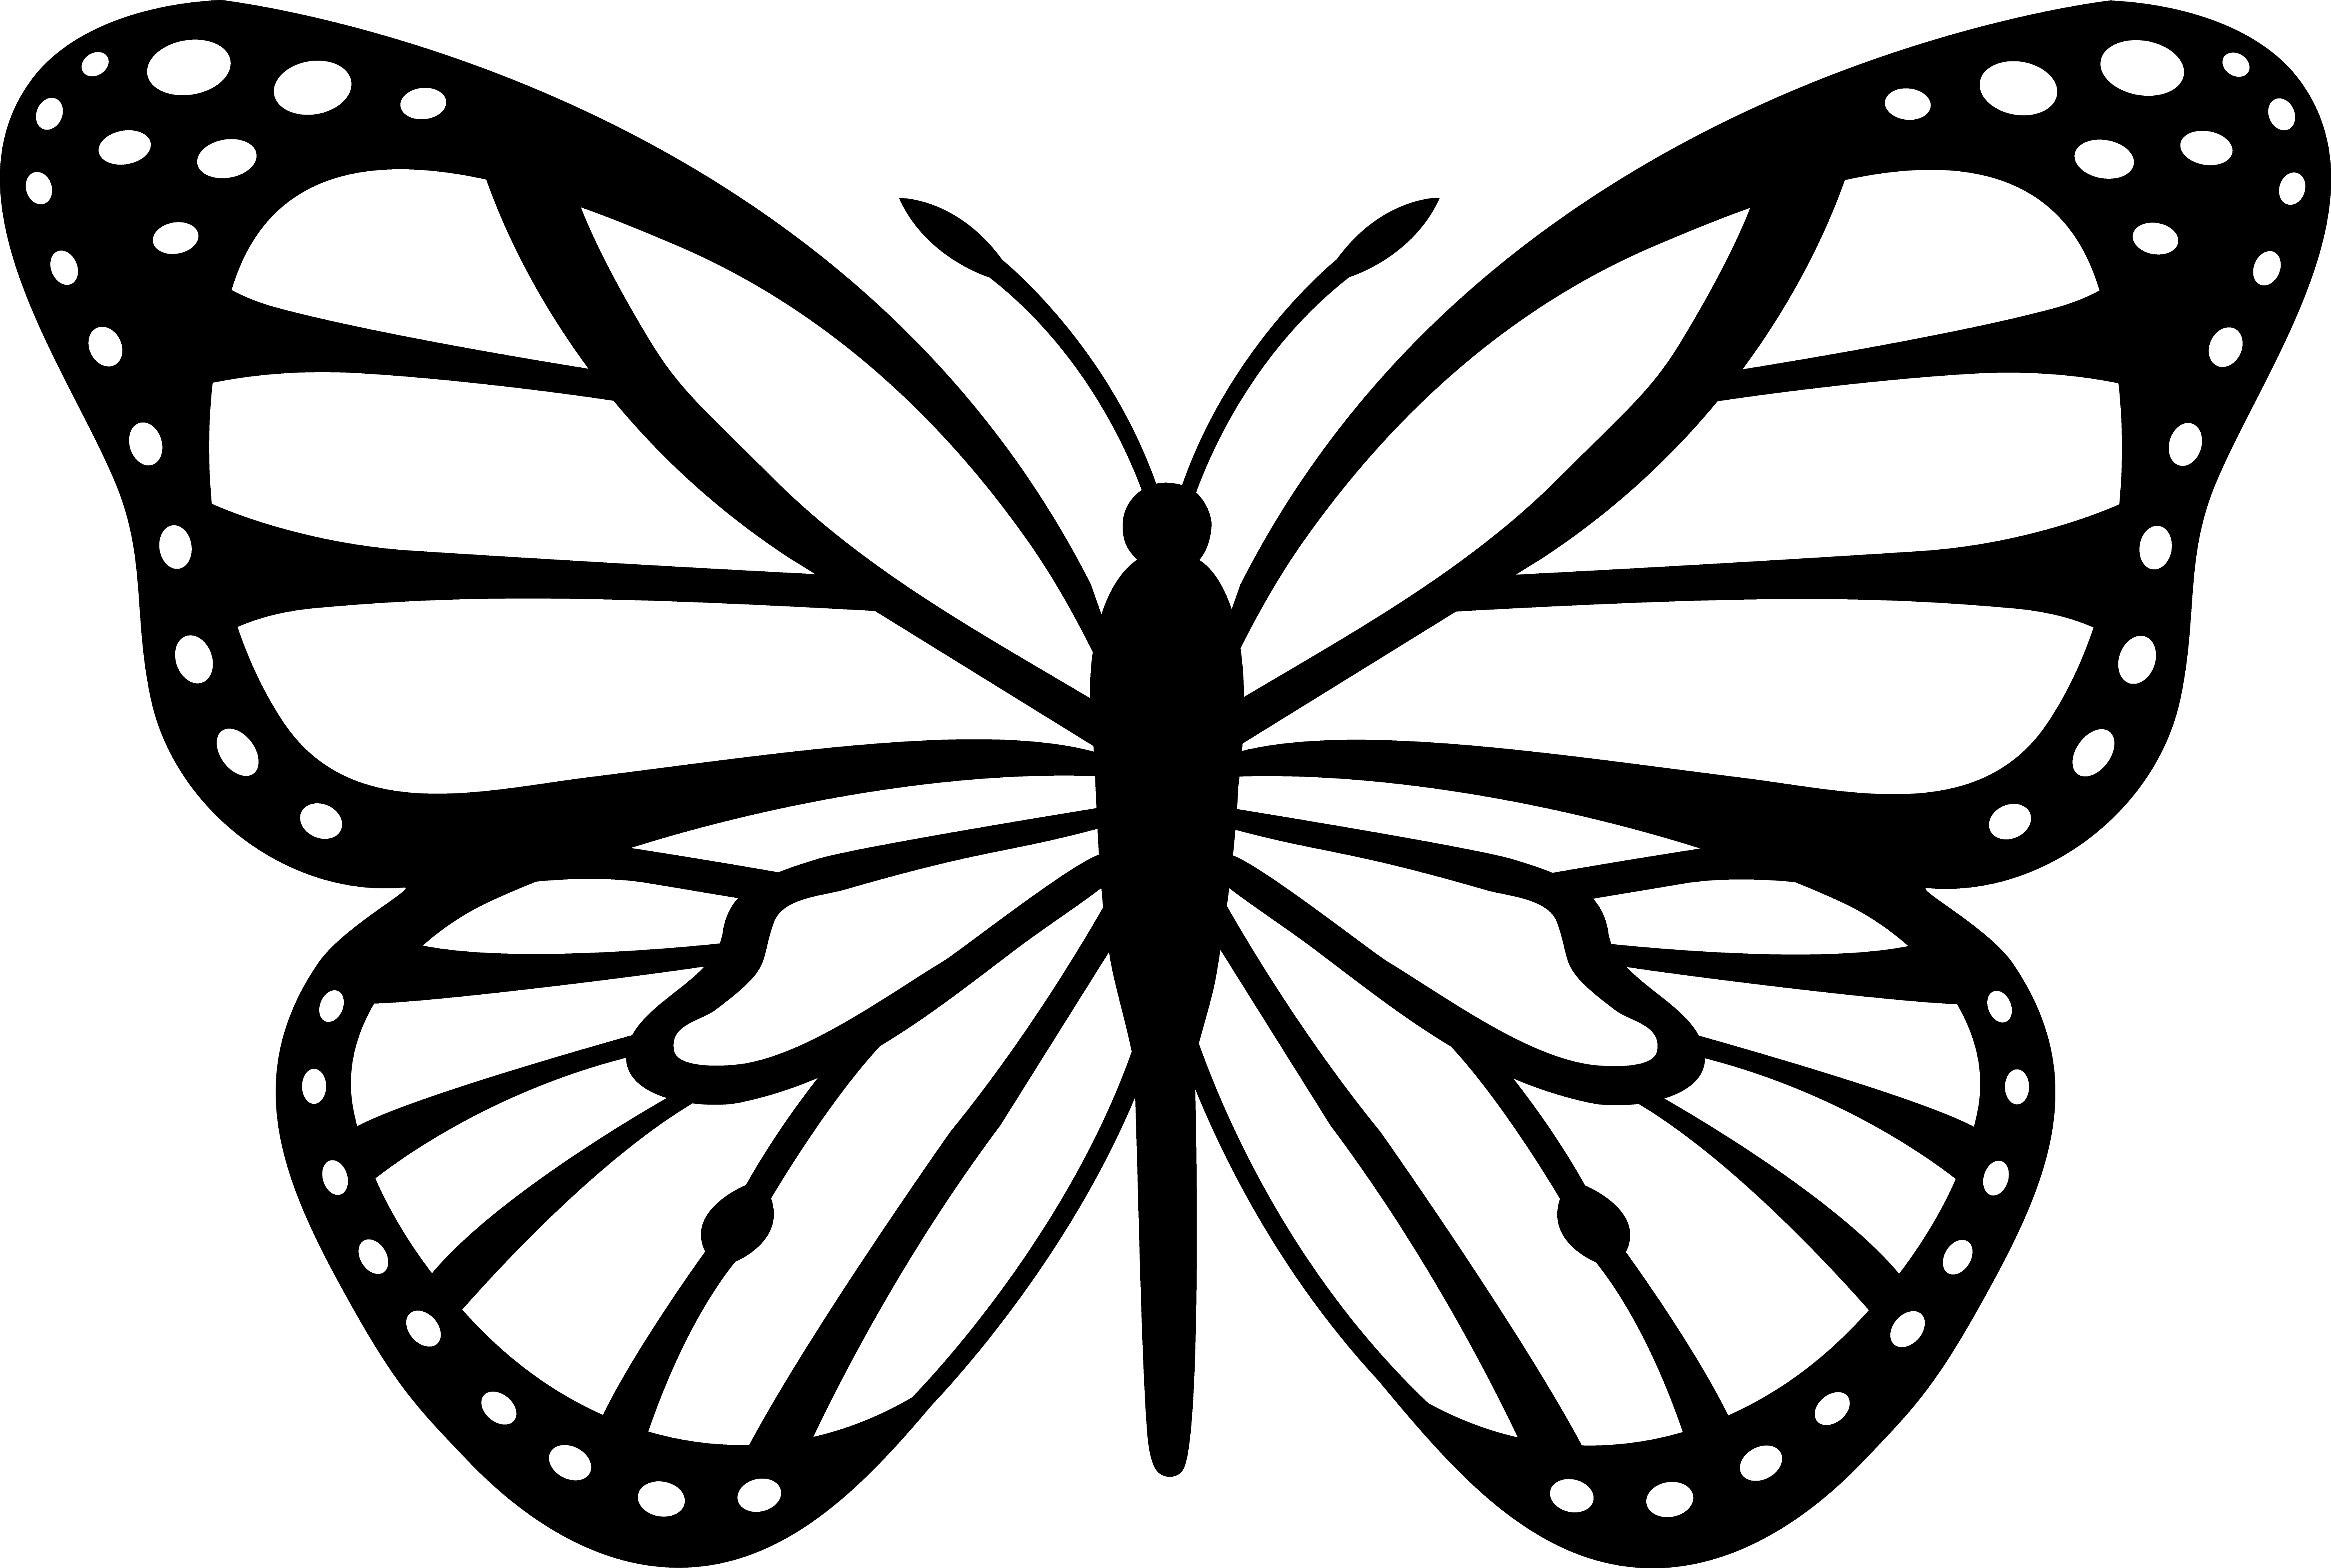 butterfly drawing outline at getdrawings com free for personal use rh getdrawings com Dragonfly Clip Art Black and White White Butterfly Clipart